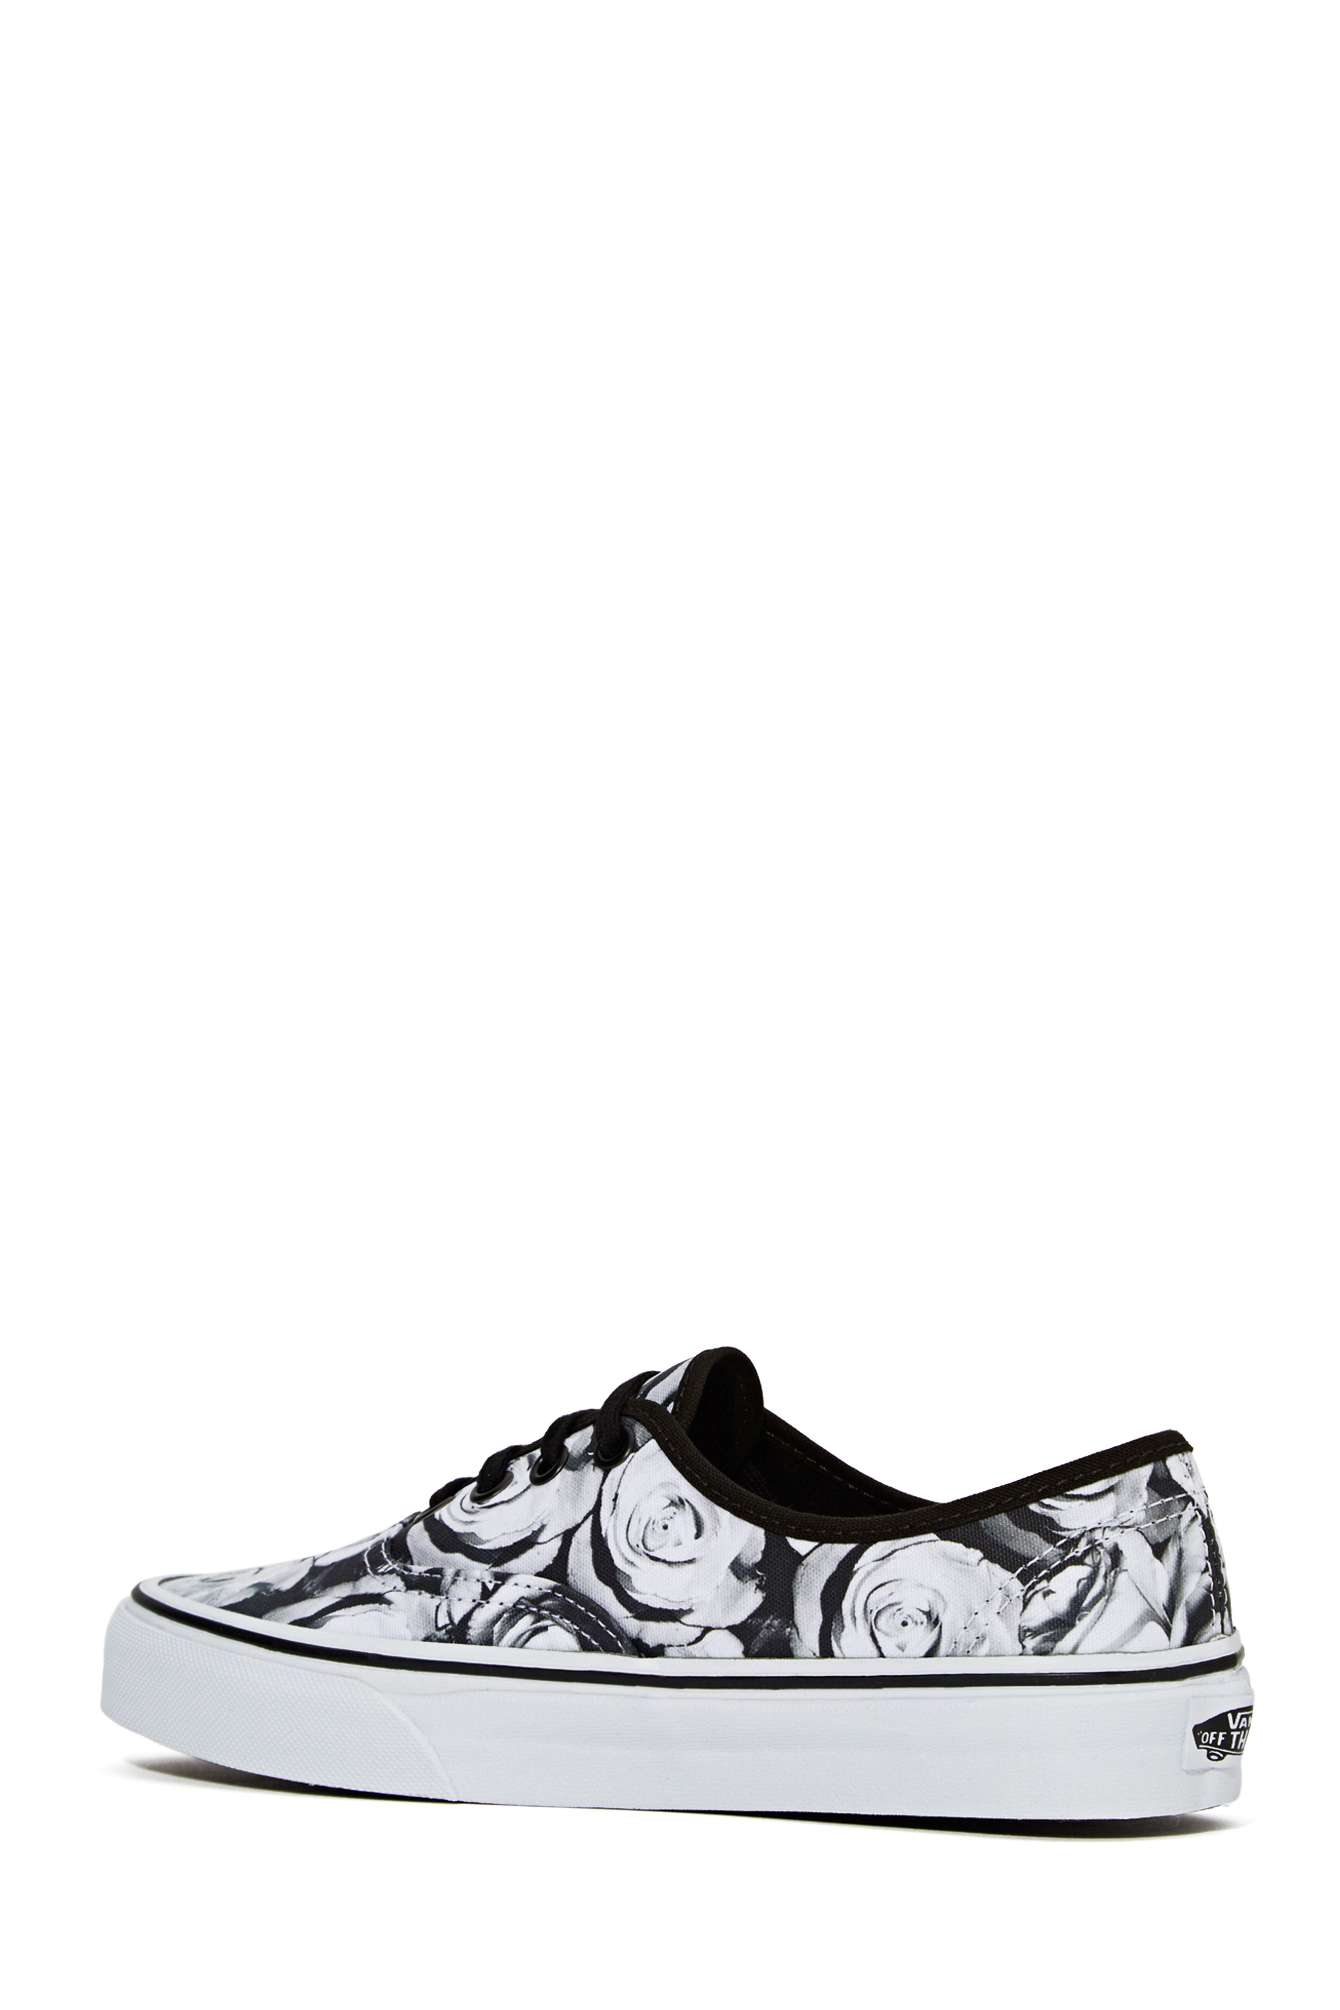 21025ed272 Lyst - Nasty Gal Vans Authentic Sneaker Digi Rose in Black